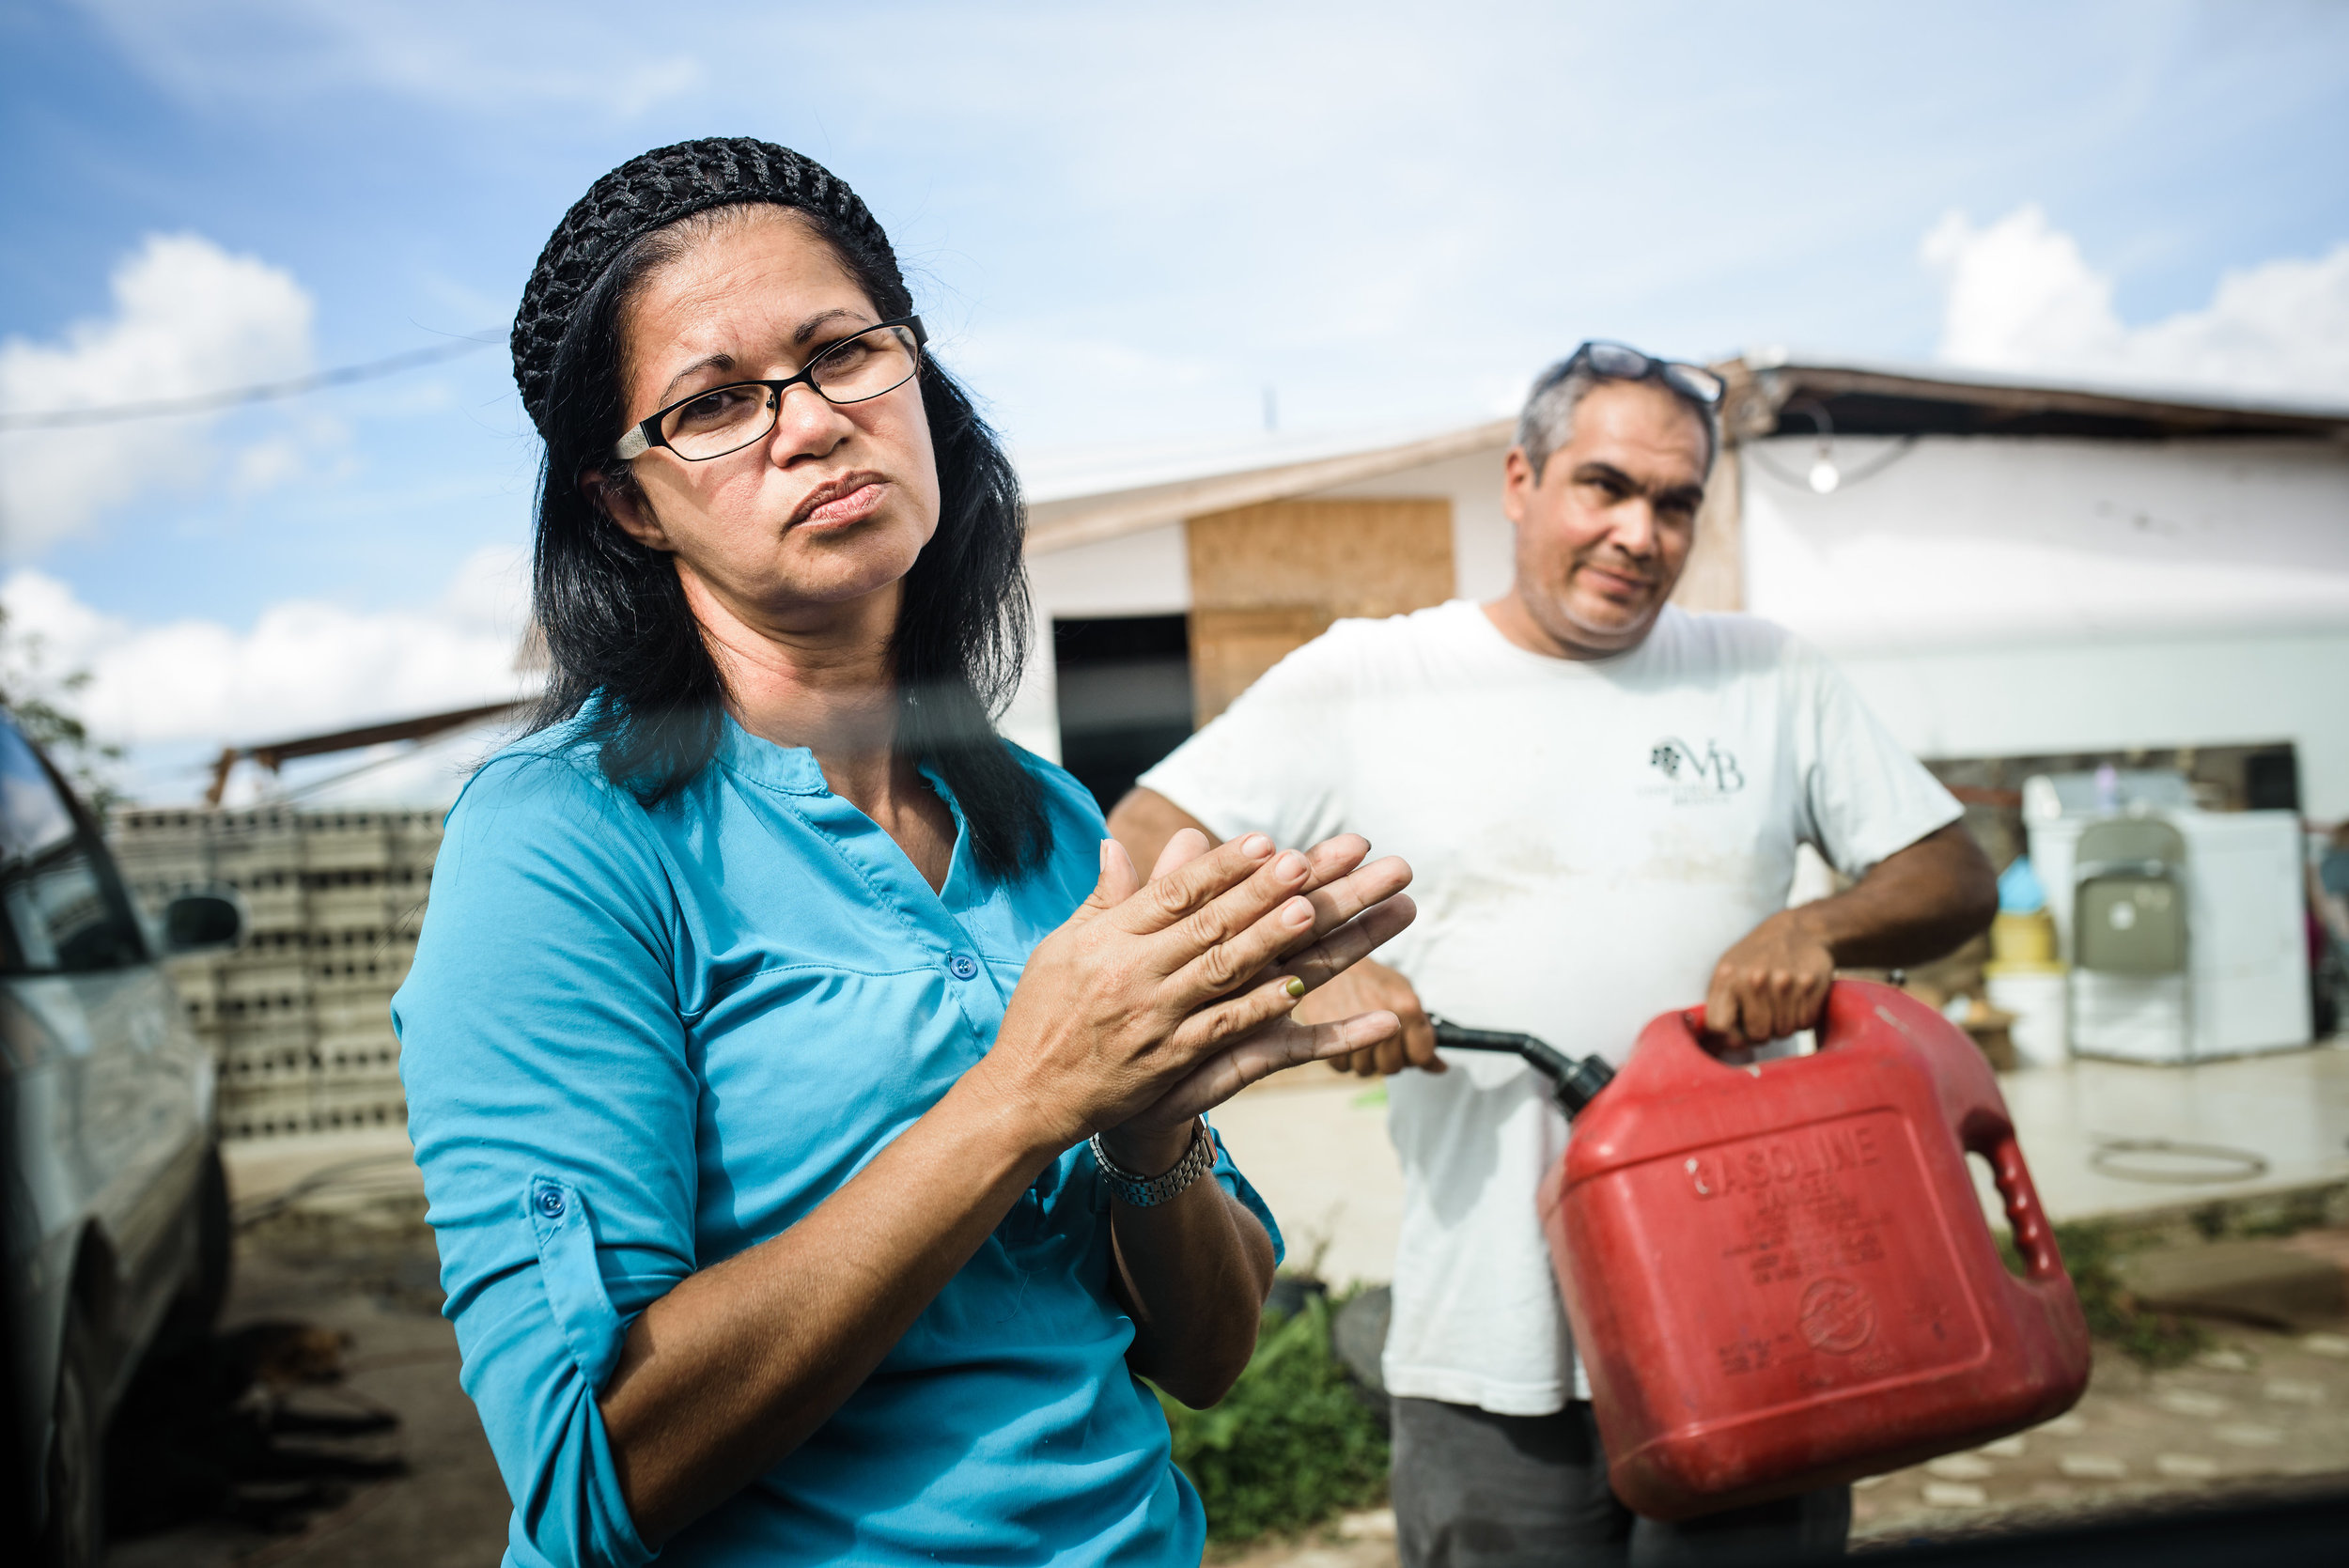 Photo credit: Aniya Emtage Legnaro  Amalia Rosario is a baker and provides for the family. Hurricane Maria took away the stove and parts of her home where all her utensils were. She no longer has the equipment to bake and provide for her family. Jayuya, Puerto Rico